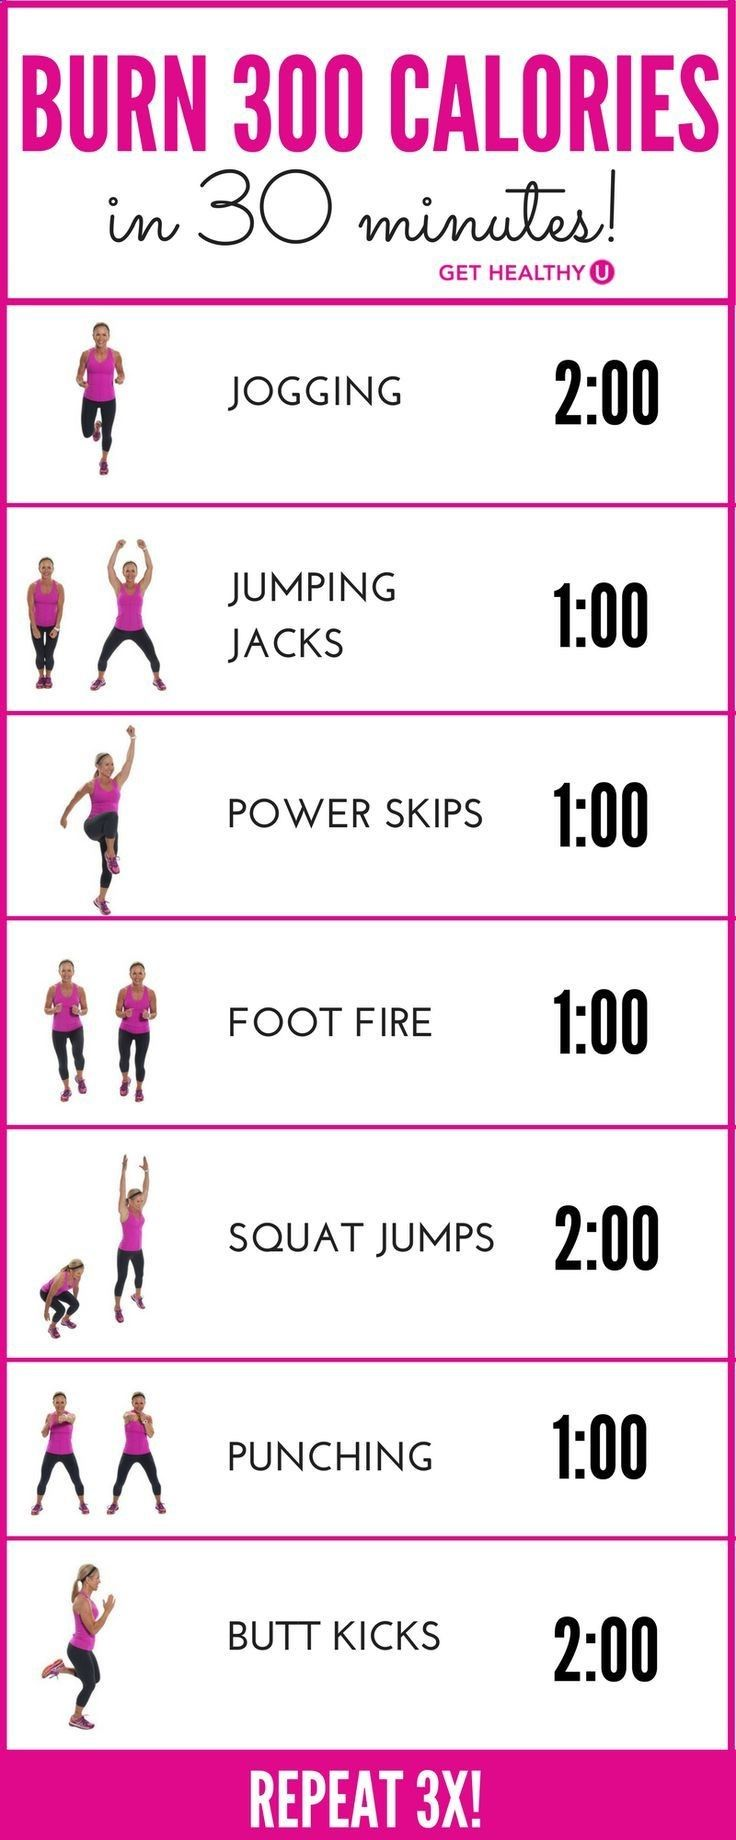 How do we know you�ll burn 300 calories? Most experts agree that the average 150-pound woman, exercising with intensity, will burn about 100 calories in 10 minutes. This 30-minute workout, if done with INTENSITY (you�re working hard enough to breathe thro